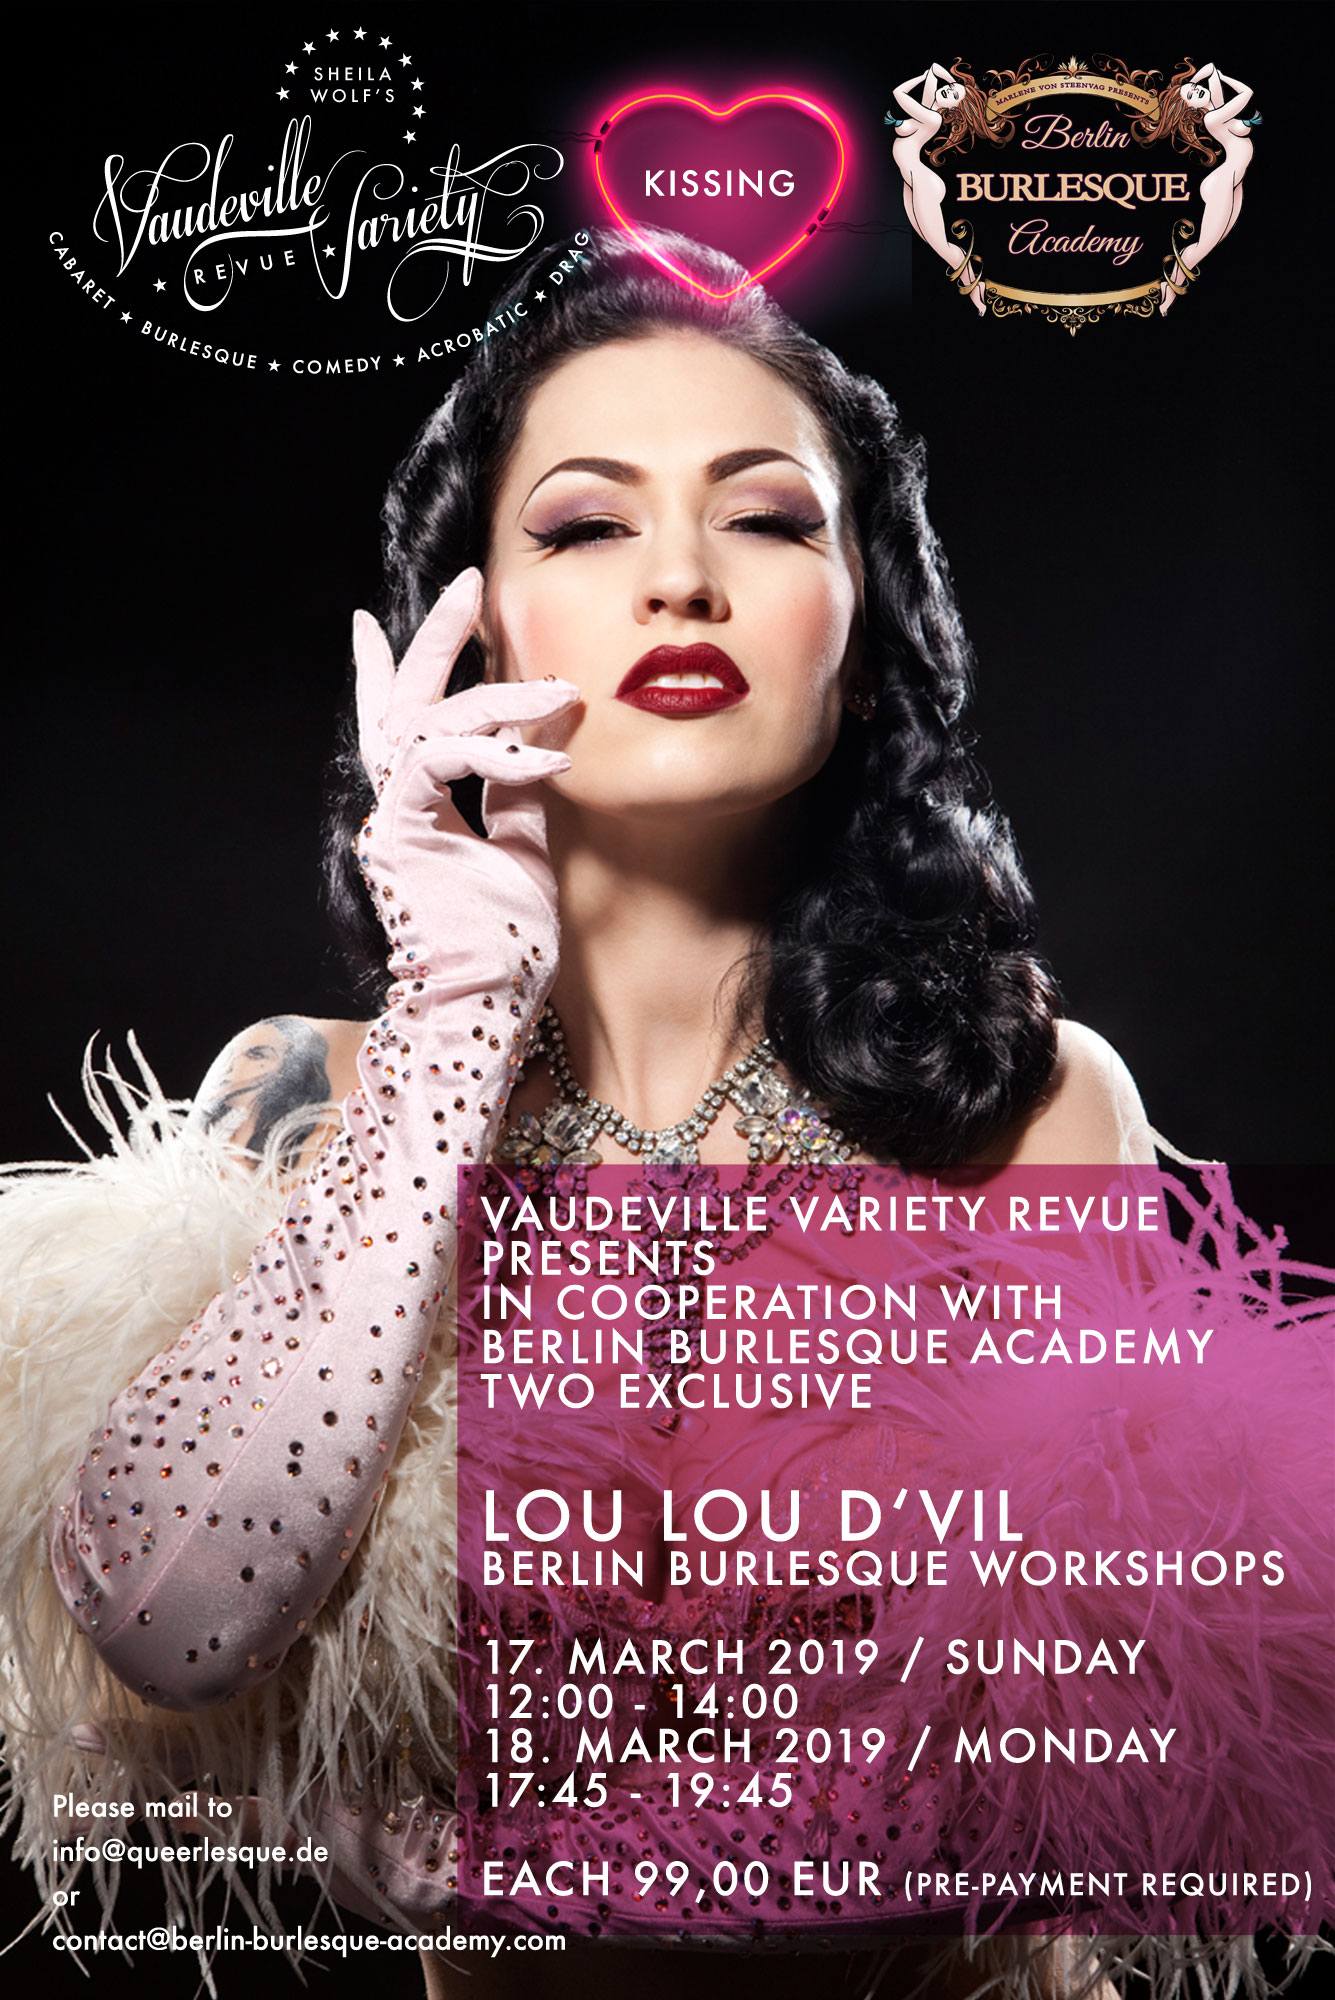 Berlin Burlesque Workshop mit LOU LOU D'VIL